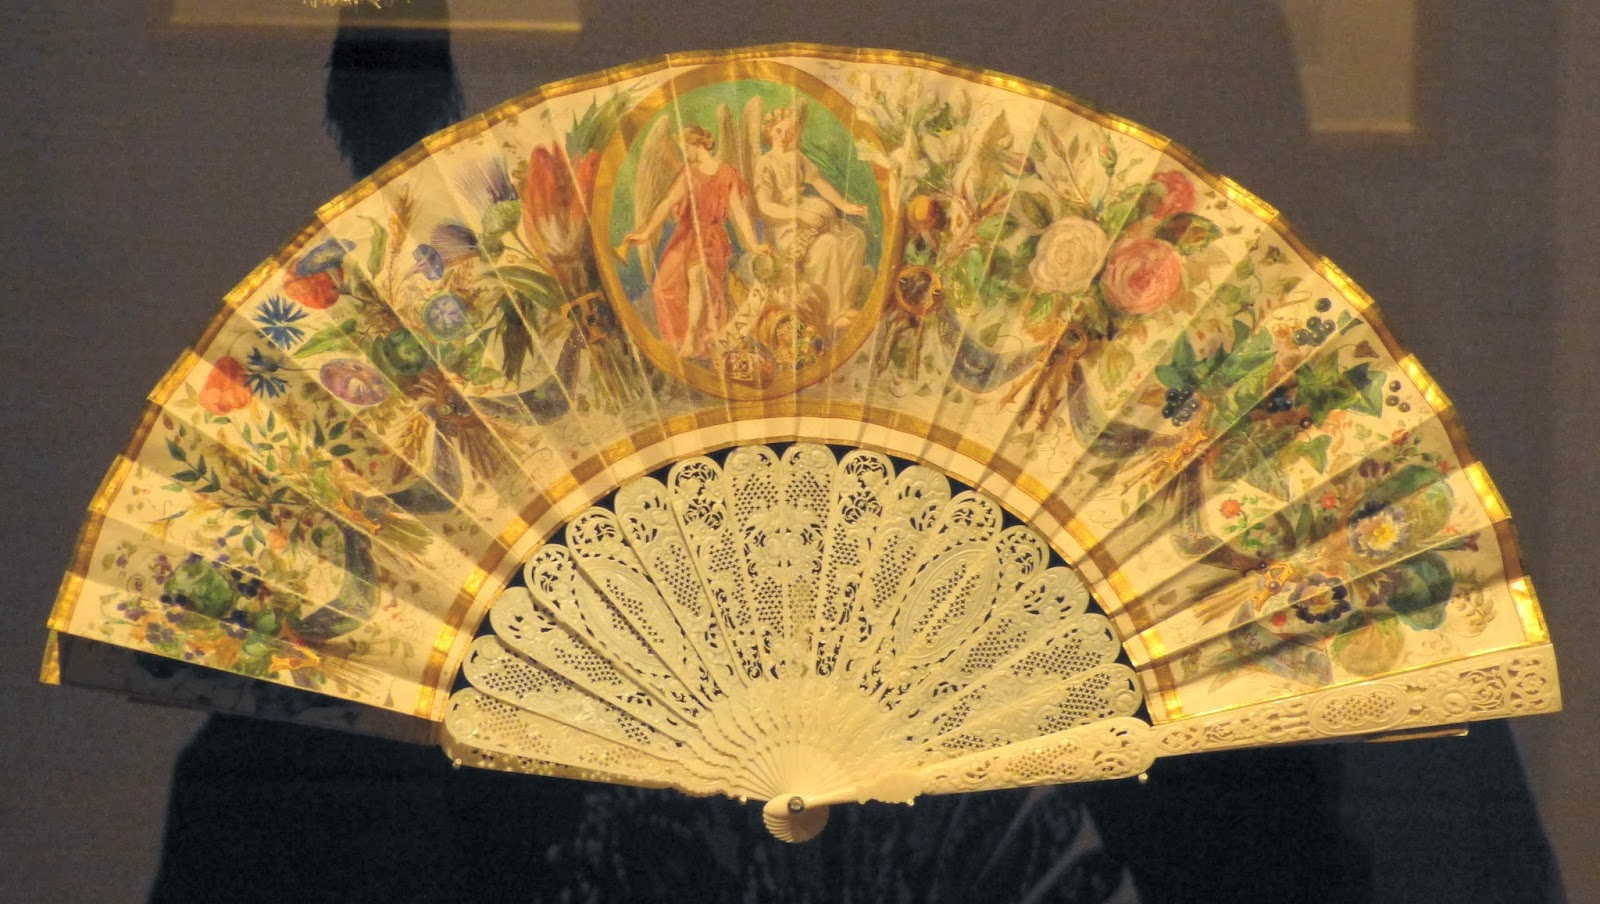 The Princess Royal's fan (1856)